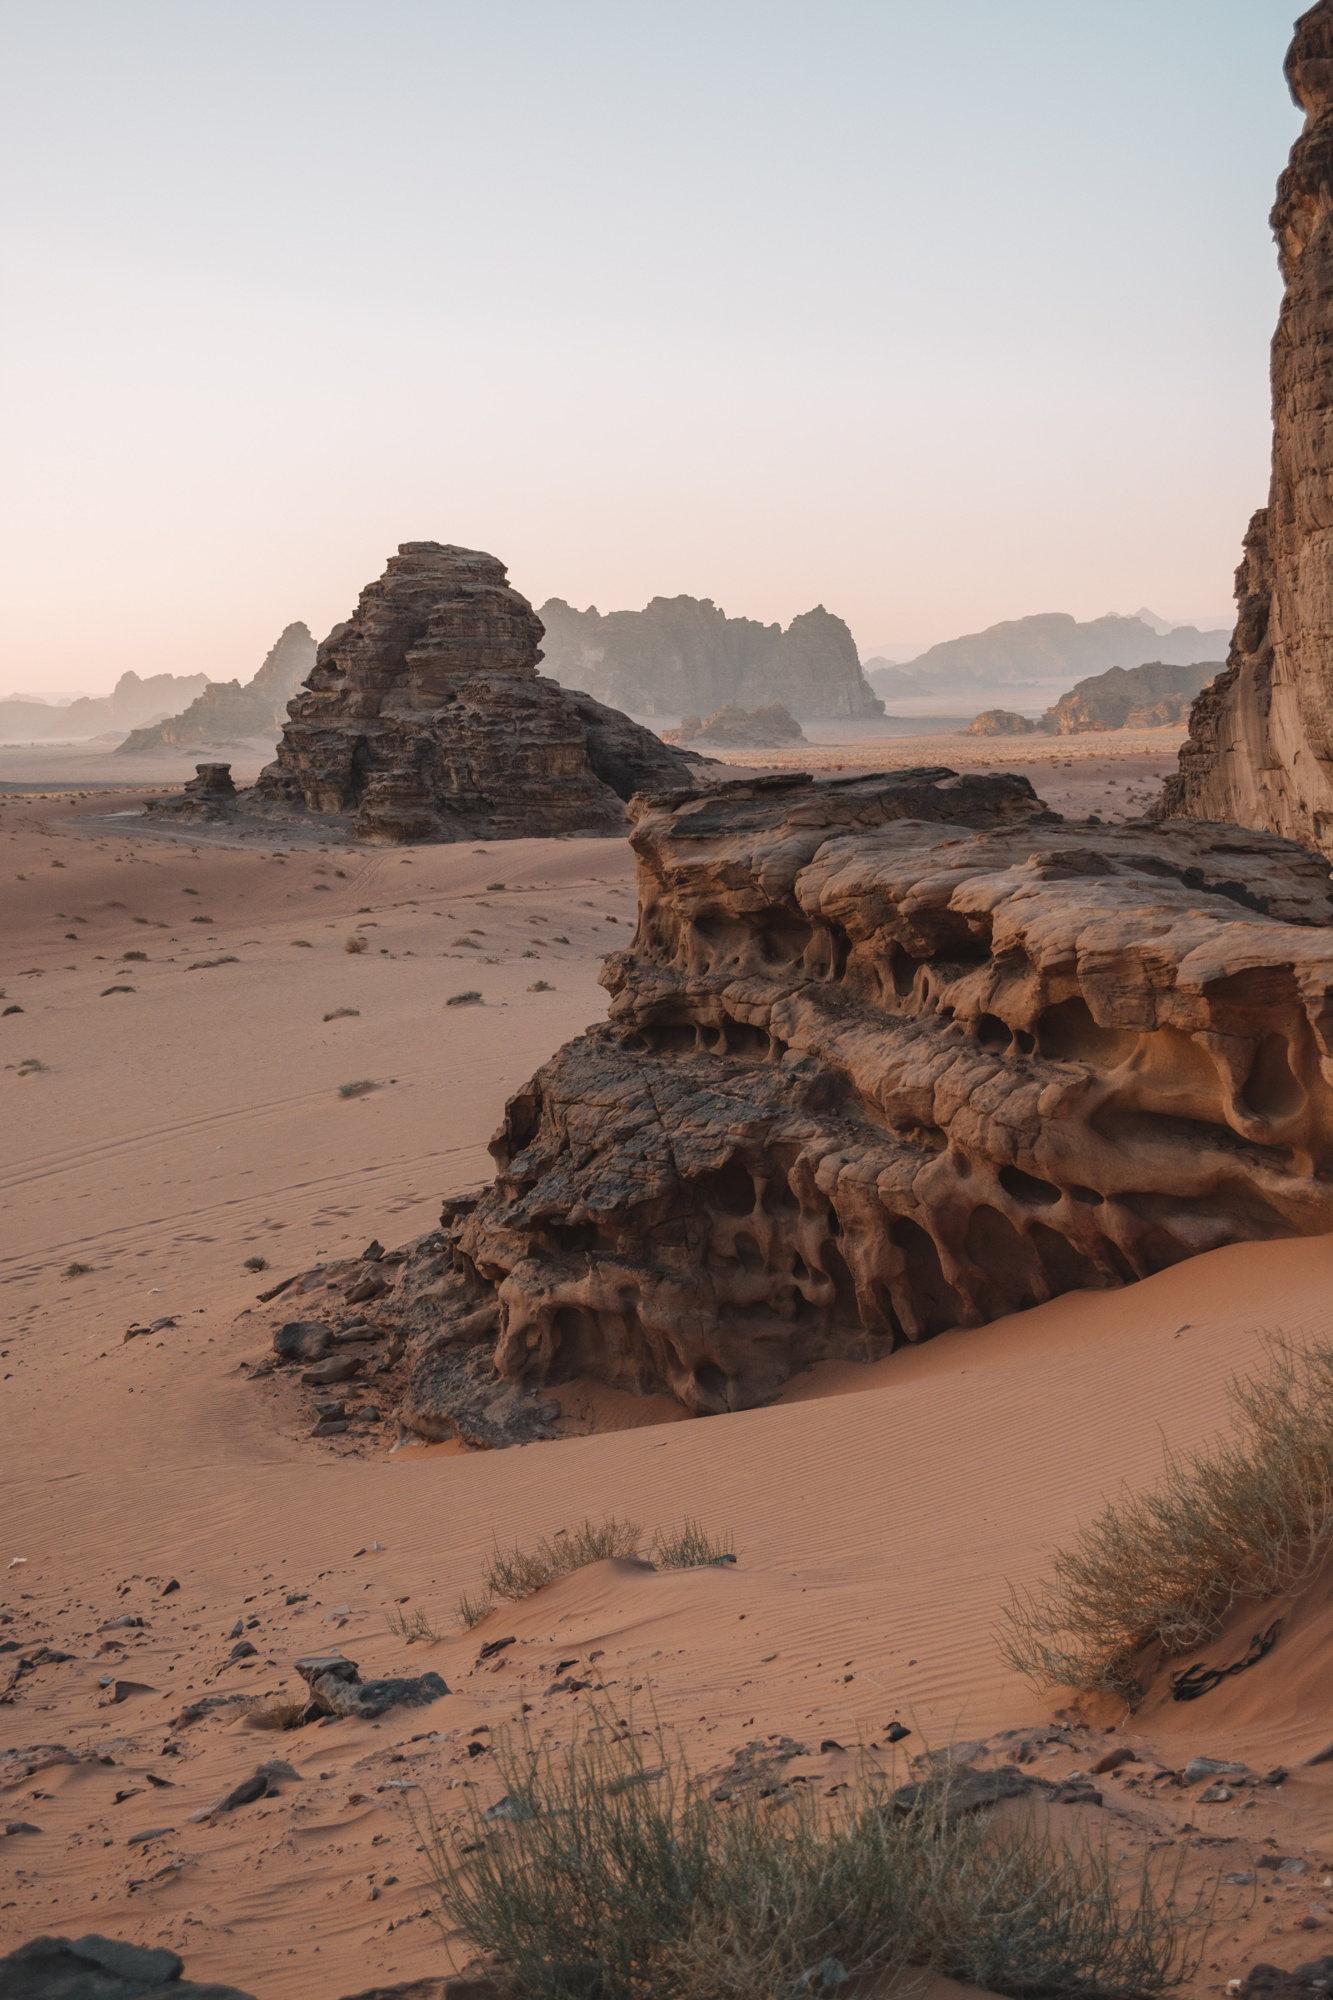 Wadi Rum Village in Jordan | Why Visiting Jordan Should Be On Your Bucket List | Mondomulia